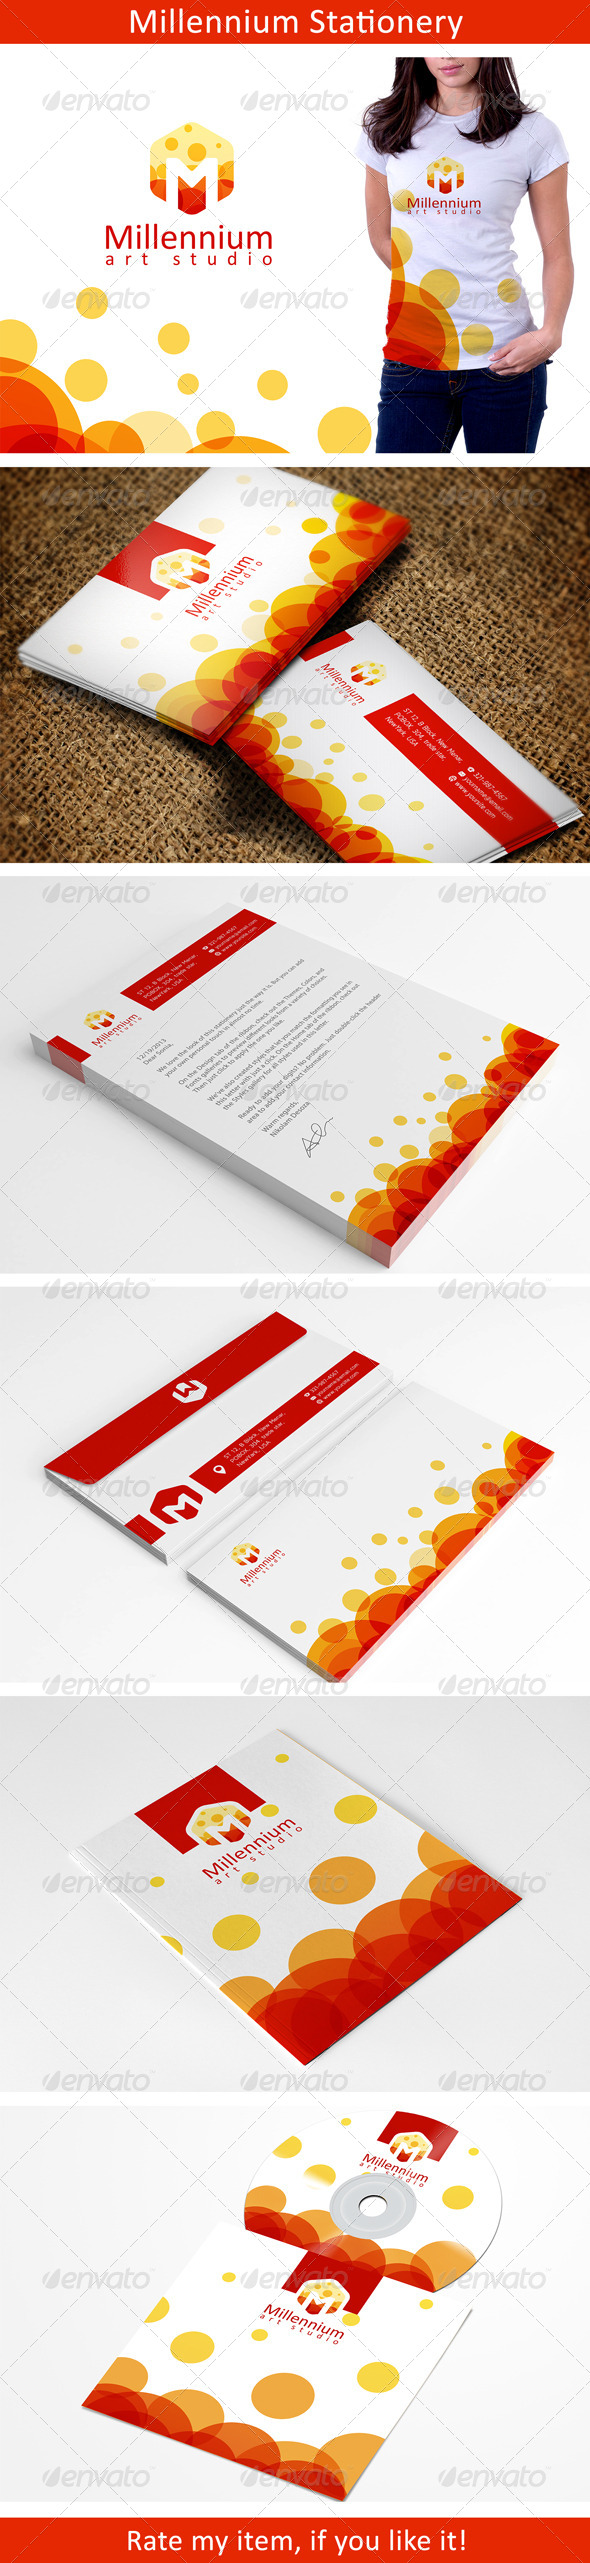 Colorful Stationery Template - Stationery Print Templates